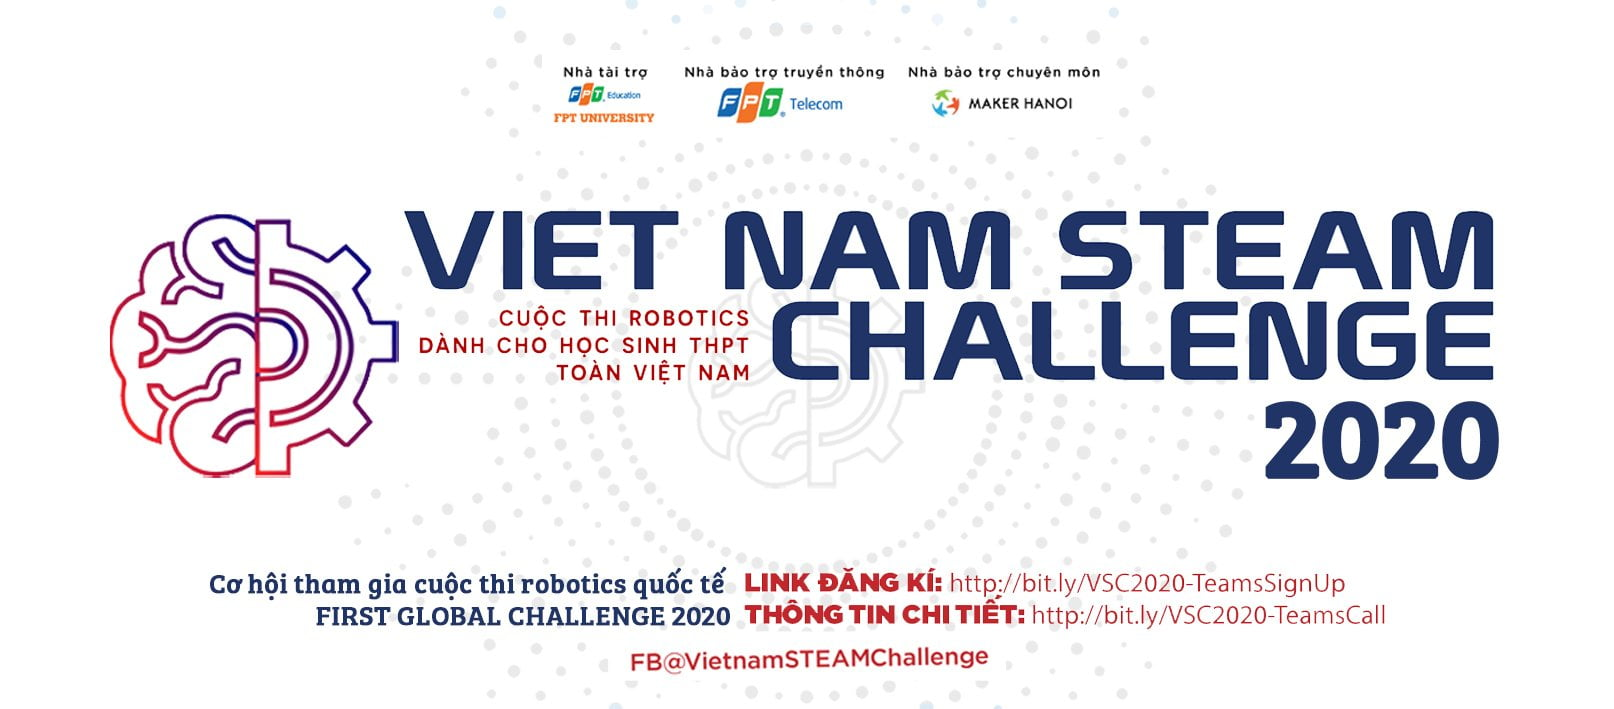 Doi-thi-steam-challenge-2020-0